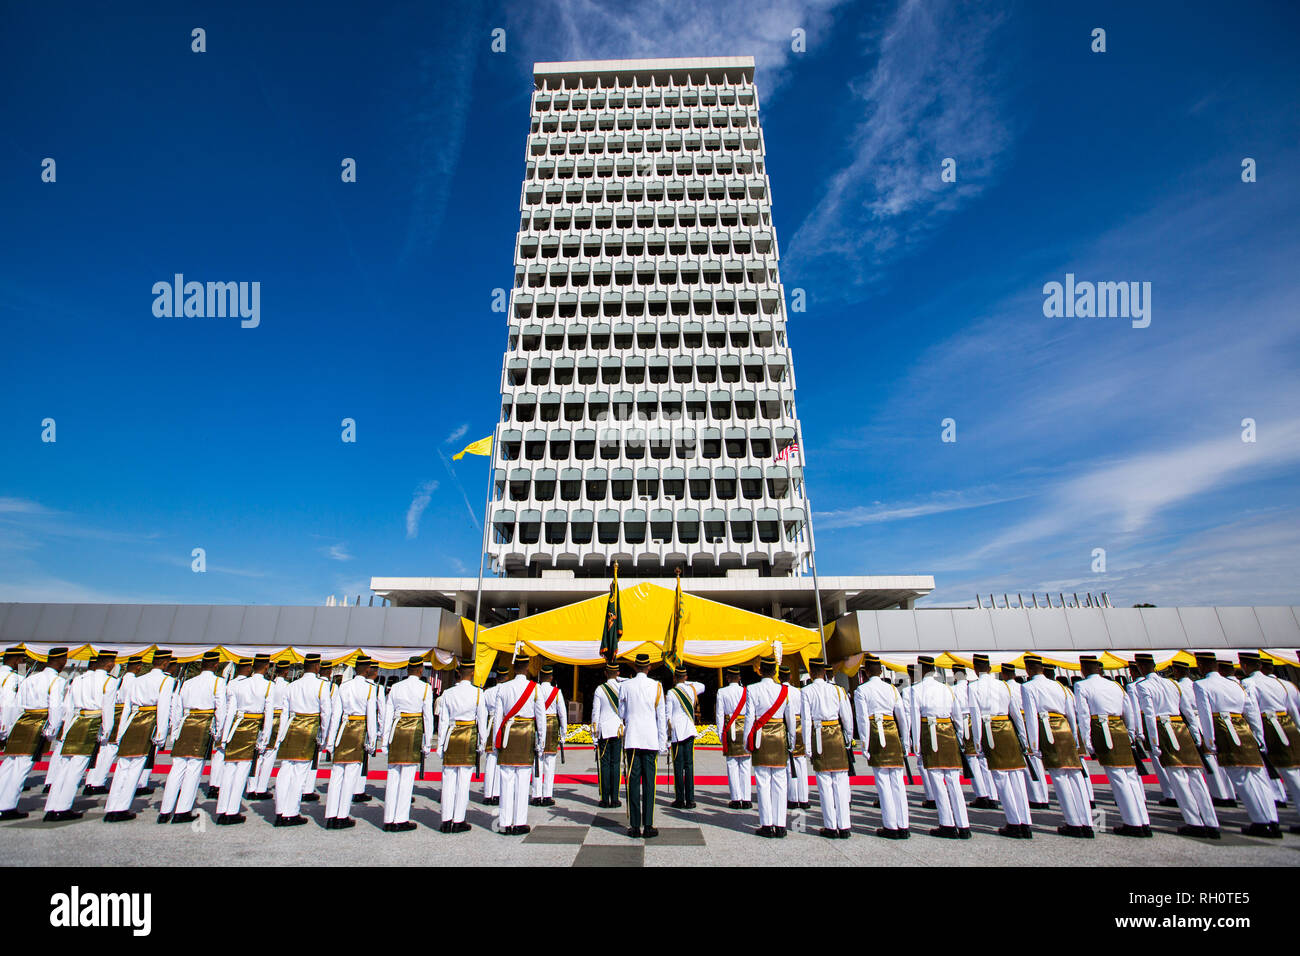 Beijing, Malaysia. 31st Jan, 2019. The welcome ceremony for Sultan Abdullah Sultan Ahmad Shah is held at the parliament in Kuala Lumpur, Malaysia, Jan. 31, 2019. Sultan Abdullah Sultan Ahmad Shah was sworn in as Malaysia's 16th king in a ceremony at the national palace on Thursday. Malaysia is a constitutional monarchy, with nine sultans or rulers, who head their respective state and act as the religious leader, taking turns to serve as the king for a five-year term. Credit: Zhu Wei/Xinhua/Alamy Live News - Stock Image